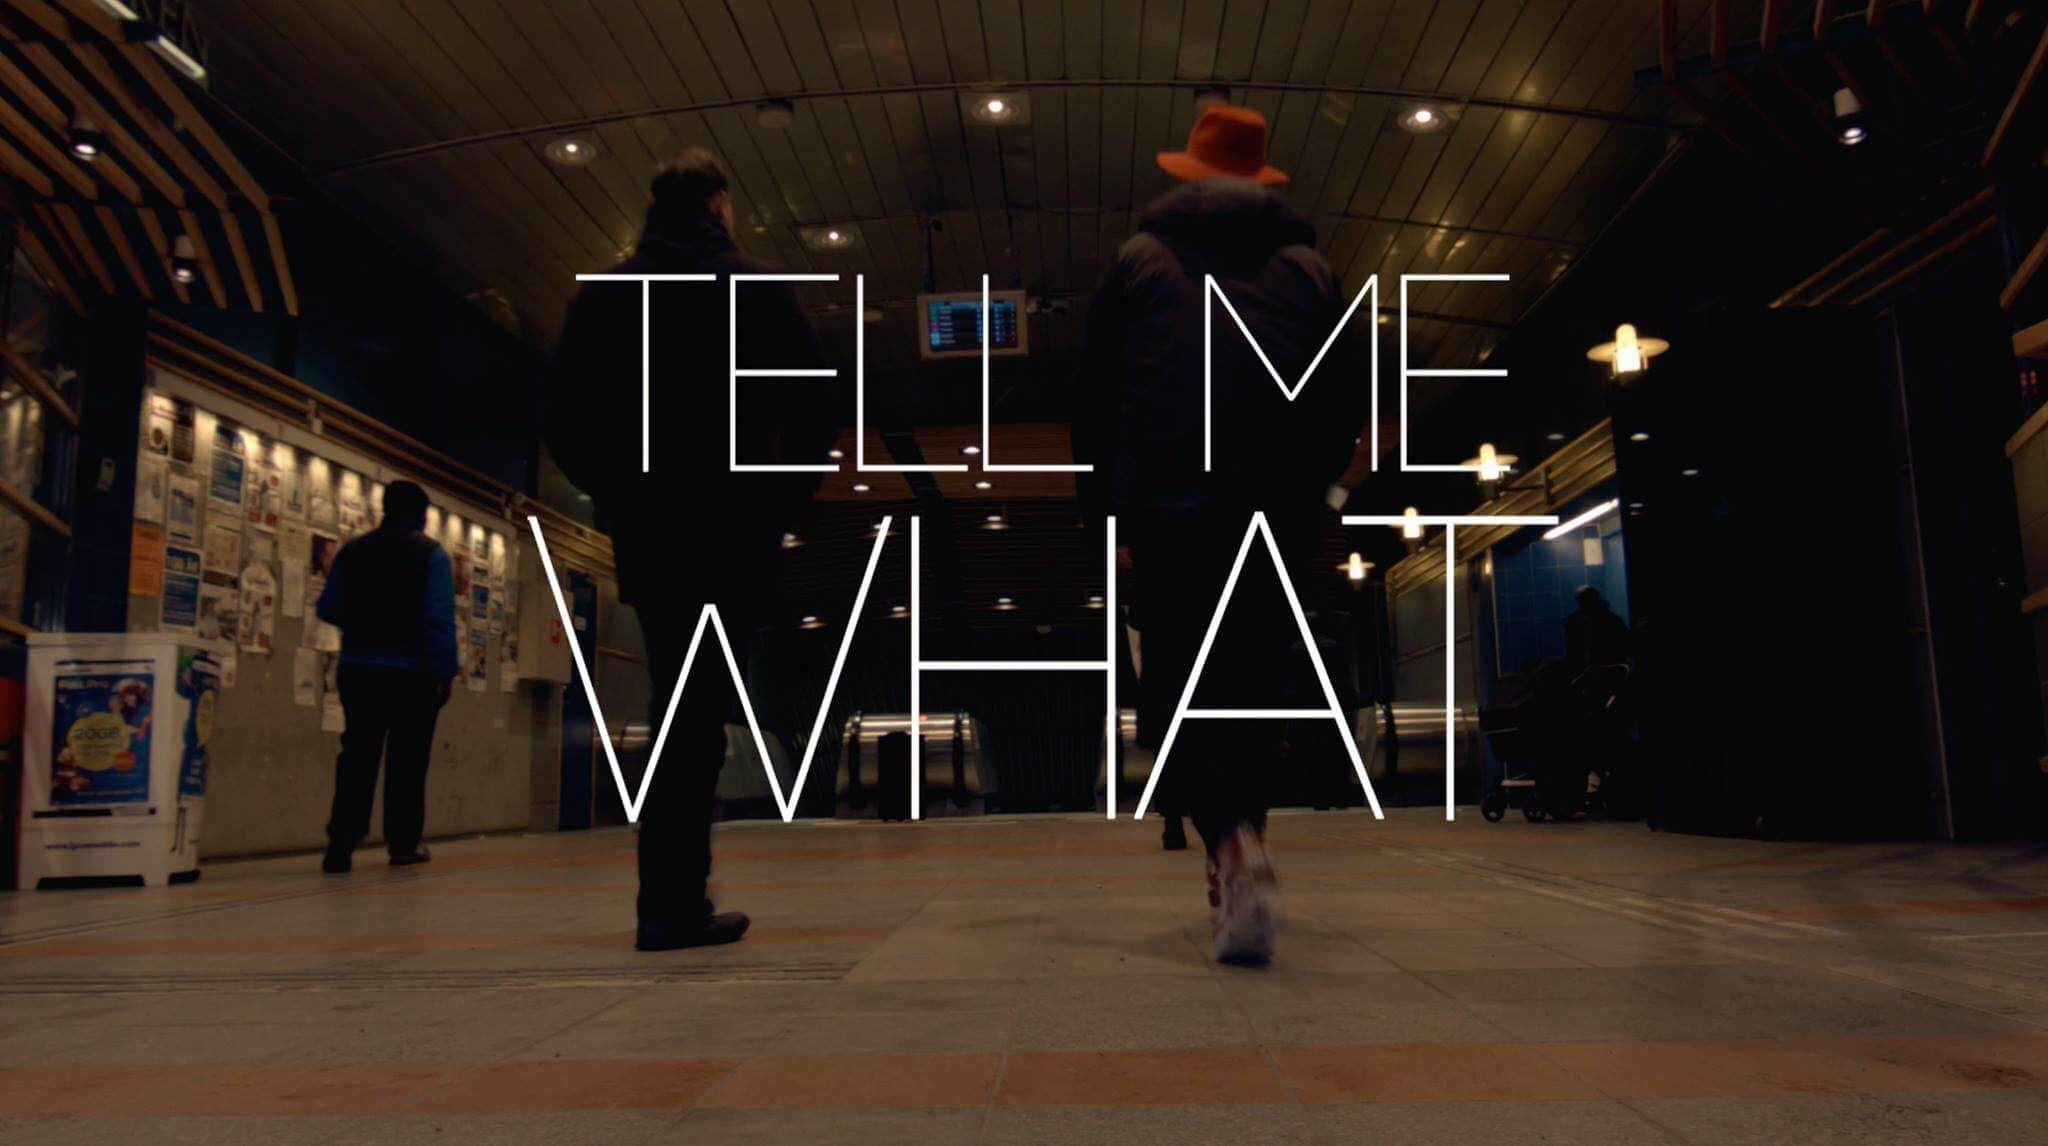 Mile Away Films music video image: Tell me